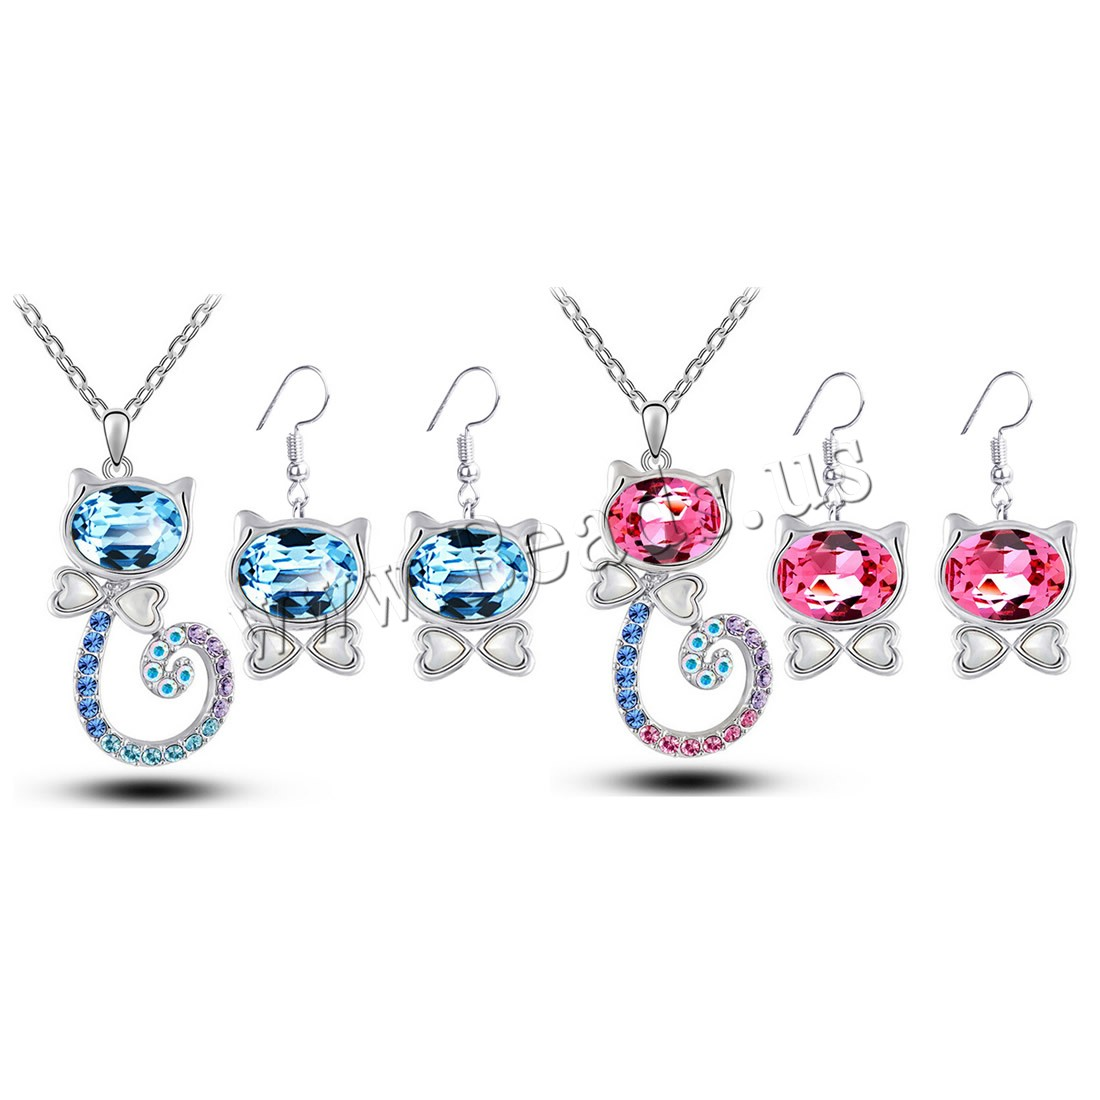 Buy Crystal Jewelry Sets earring & necklace Zinc Alloy iron chain & Crystal iron earring hook 5cm extender chain Cat platinum color plated oval chain & woman & faceted & rhinestone colors choice lead & cadmium free 23x32mm Length:Approx 15.5 Inch Sold Set